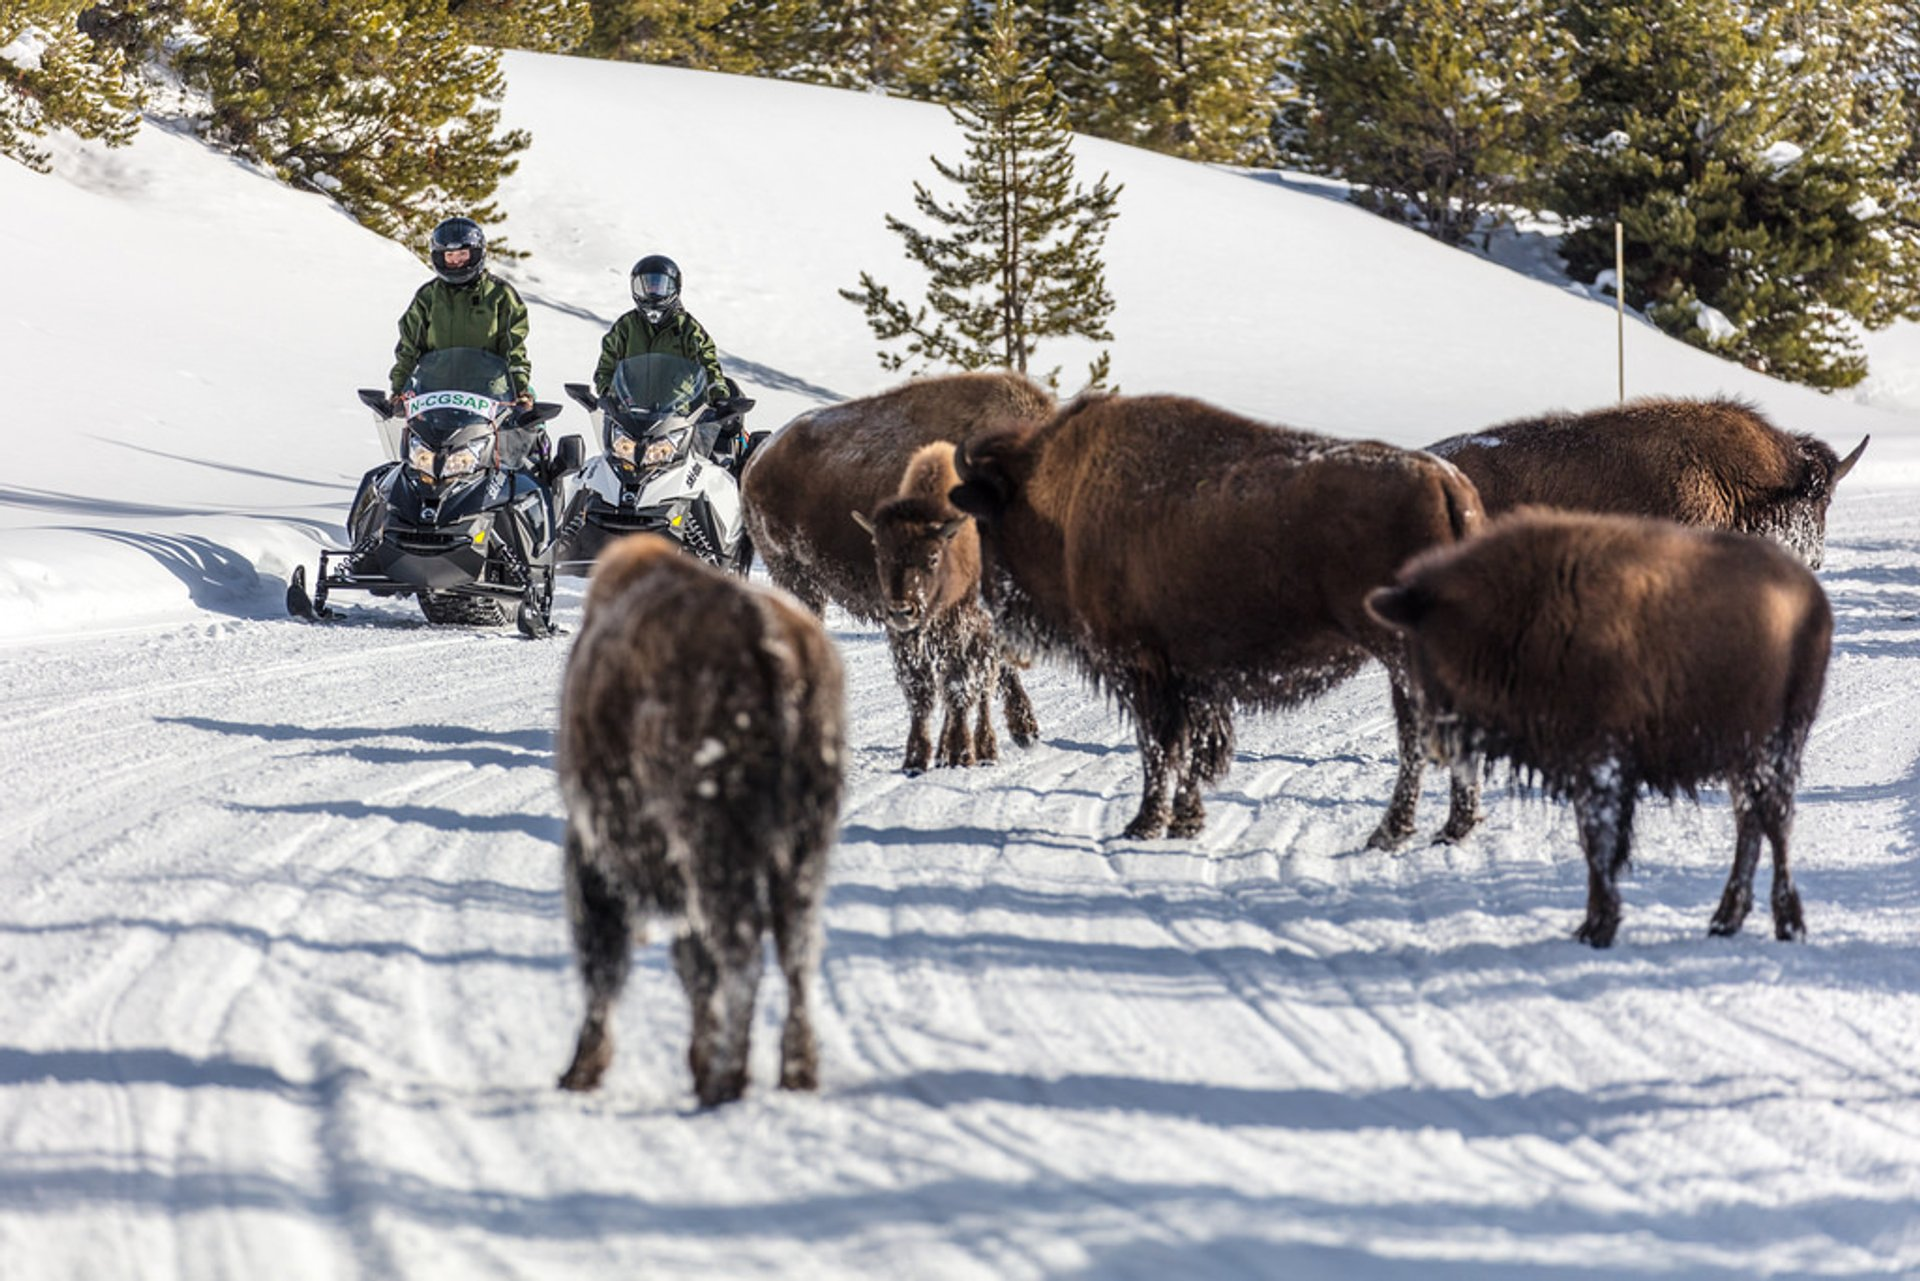 Snowmobiles passing bison on the road